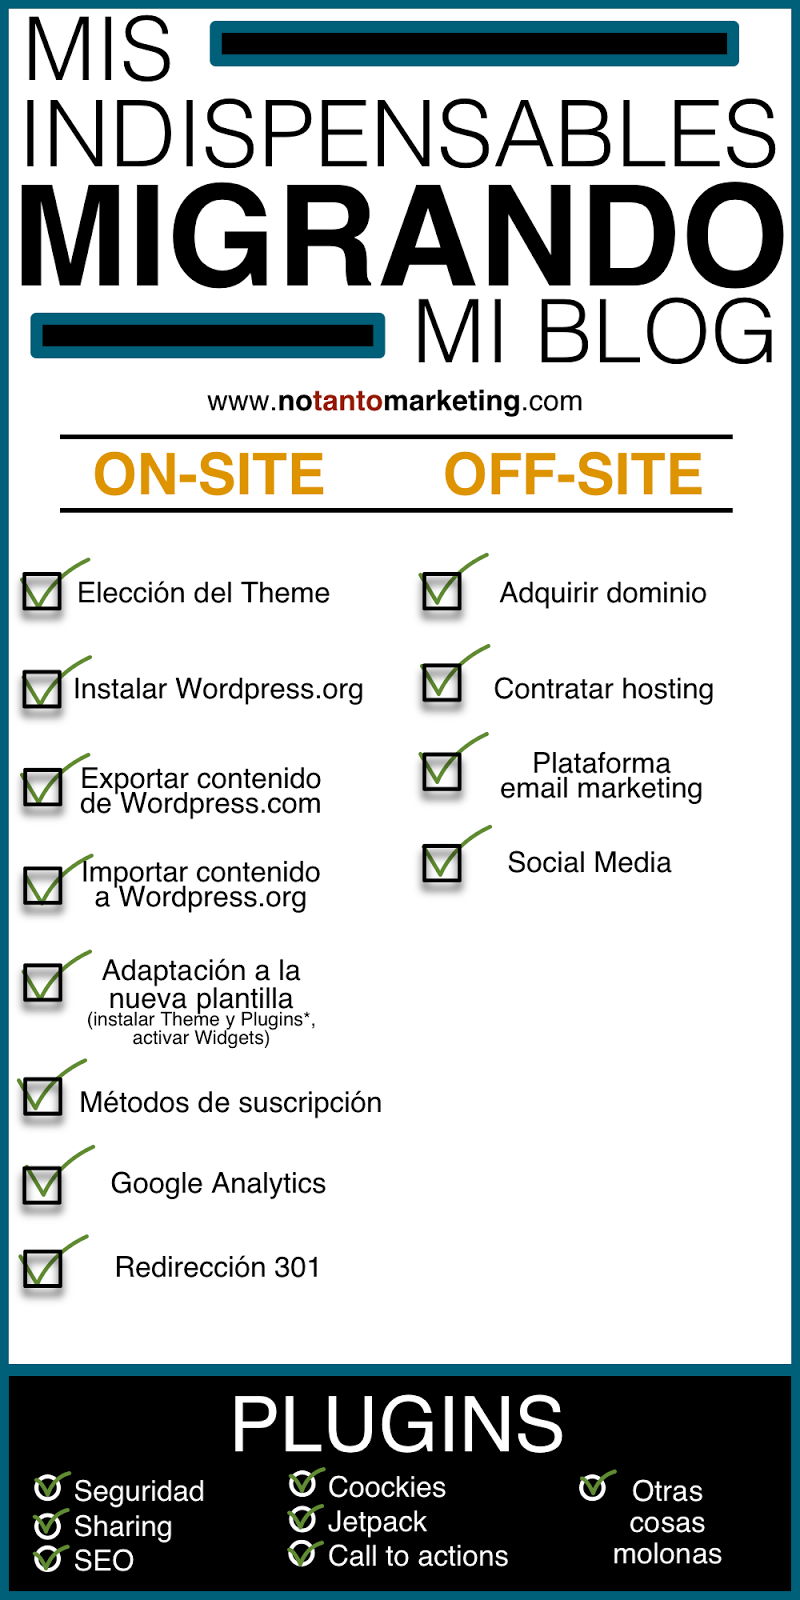 Notantomarketing.com - Migrando el blog